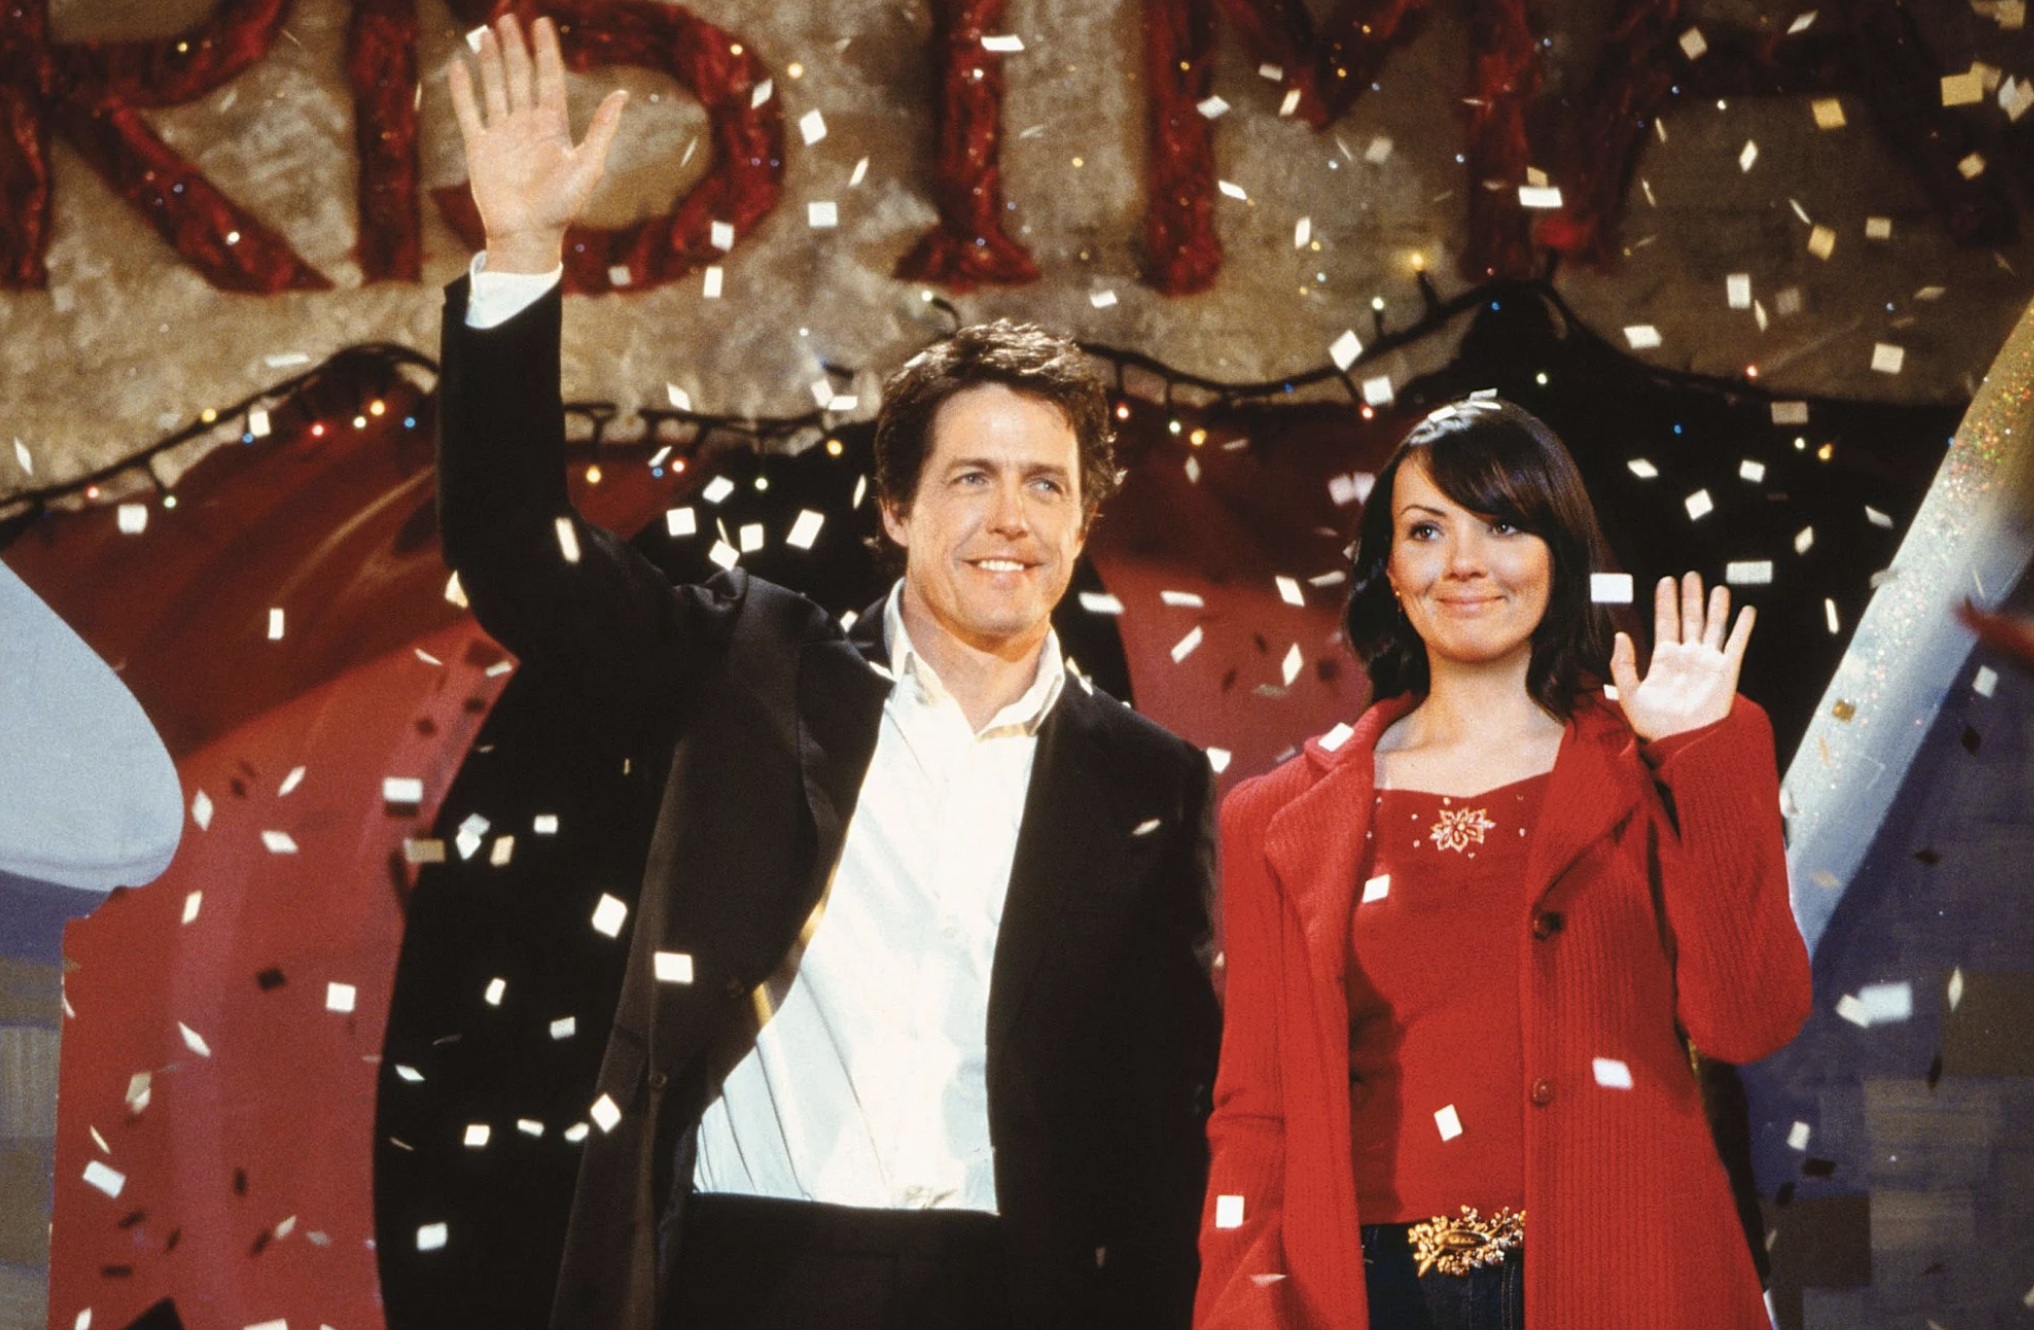 This company will pay you $2,500 to watch 25 holiday movies in 25 days